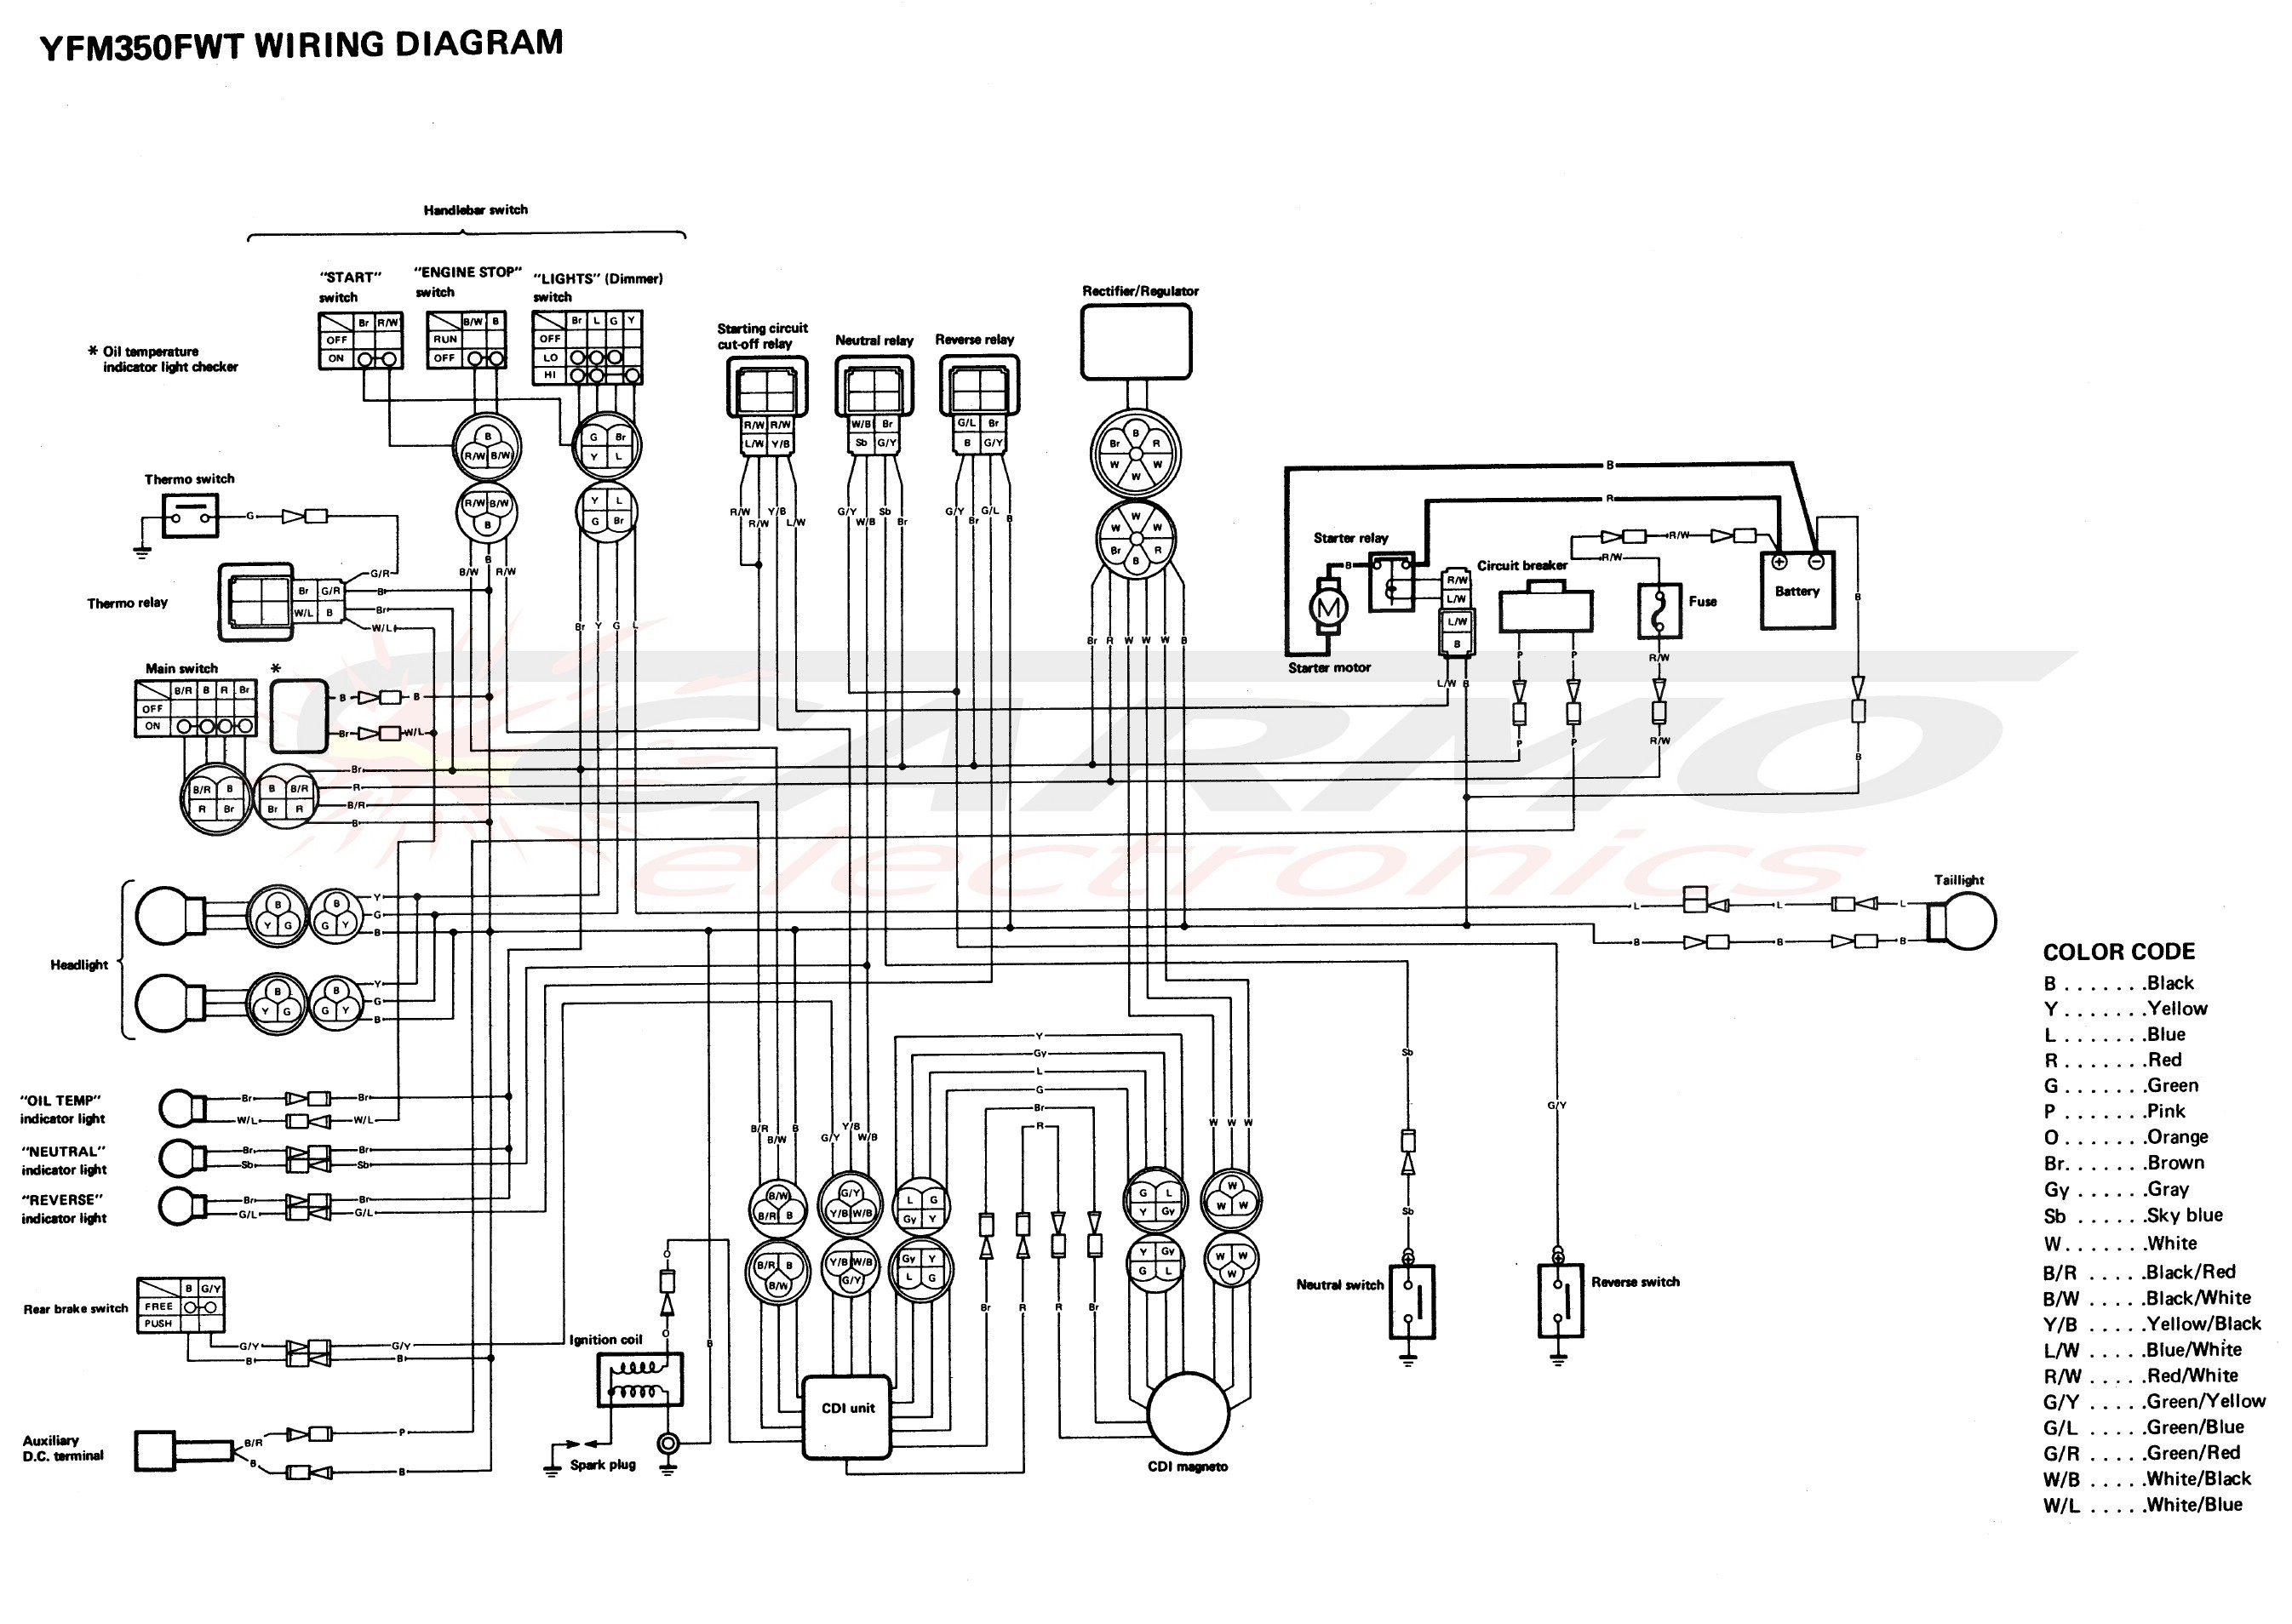 yamaha yfm350 wiring diagram 28 wiring diagram images warrior 350 wiring diagram yfm 350 warrior wiring